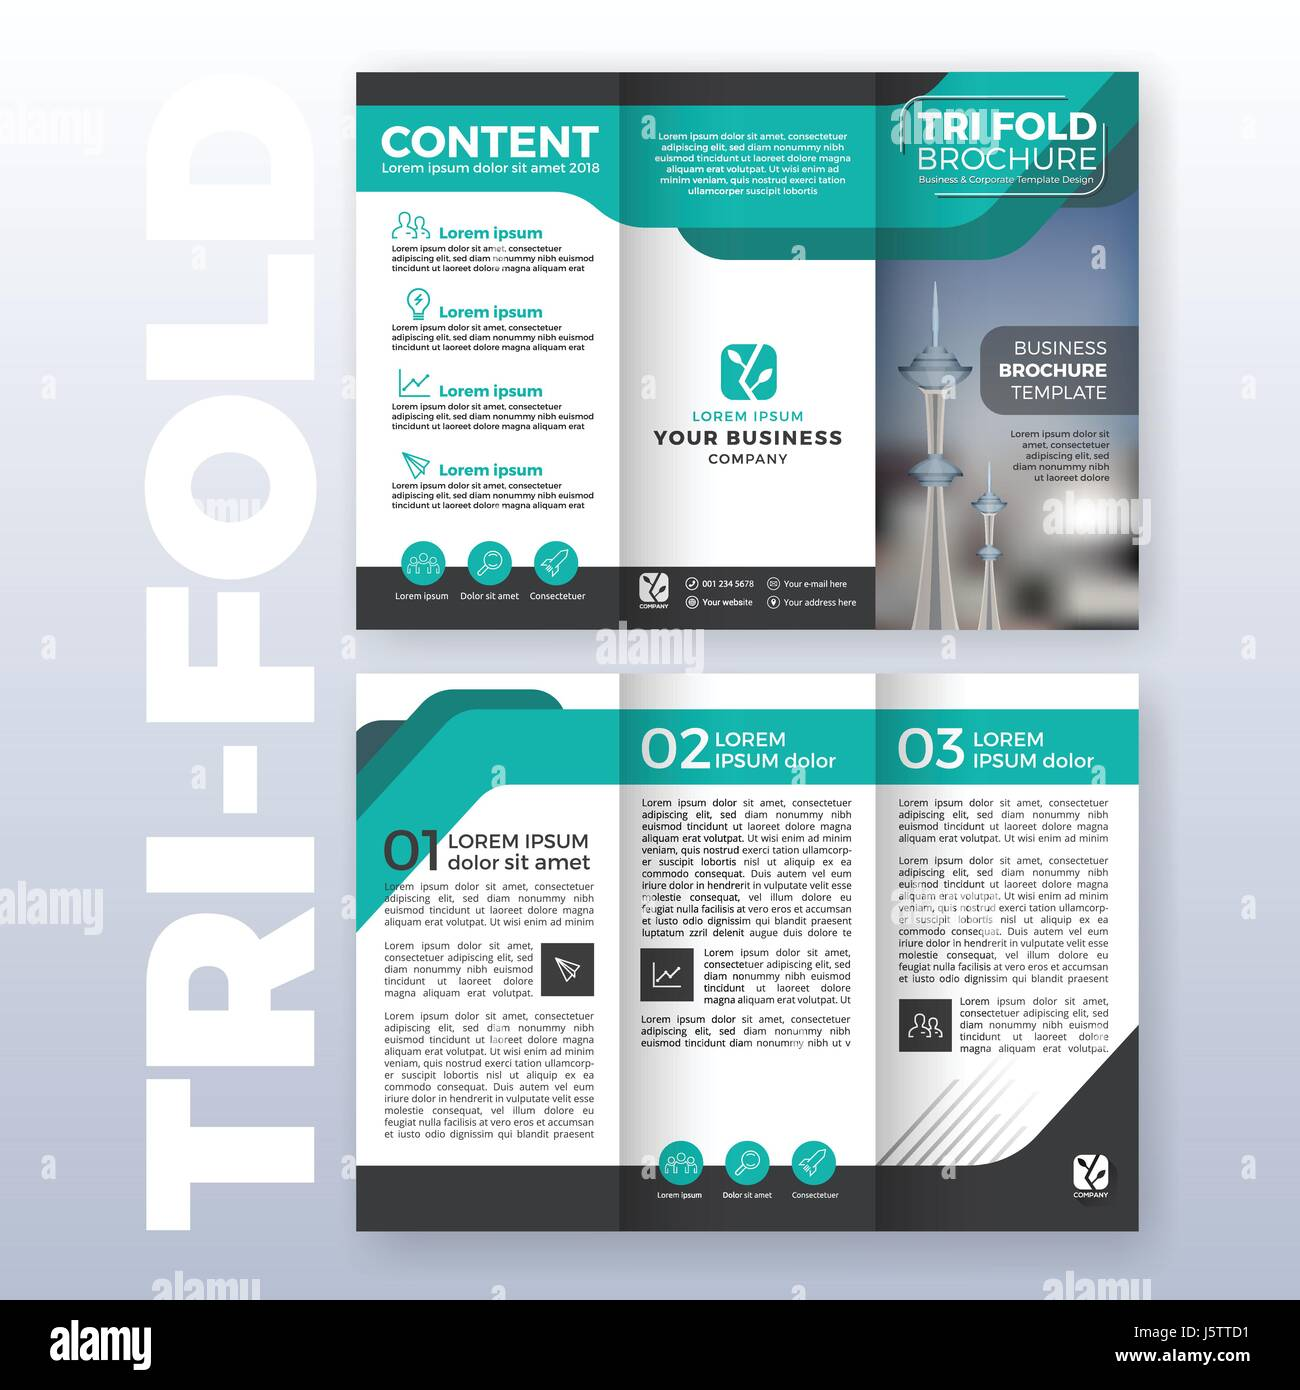 Tri fold stock photos tri fold stock images alamy for Trifold brochure template